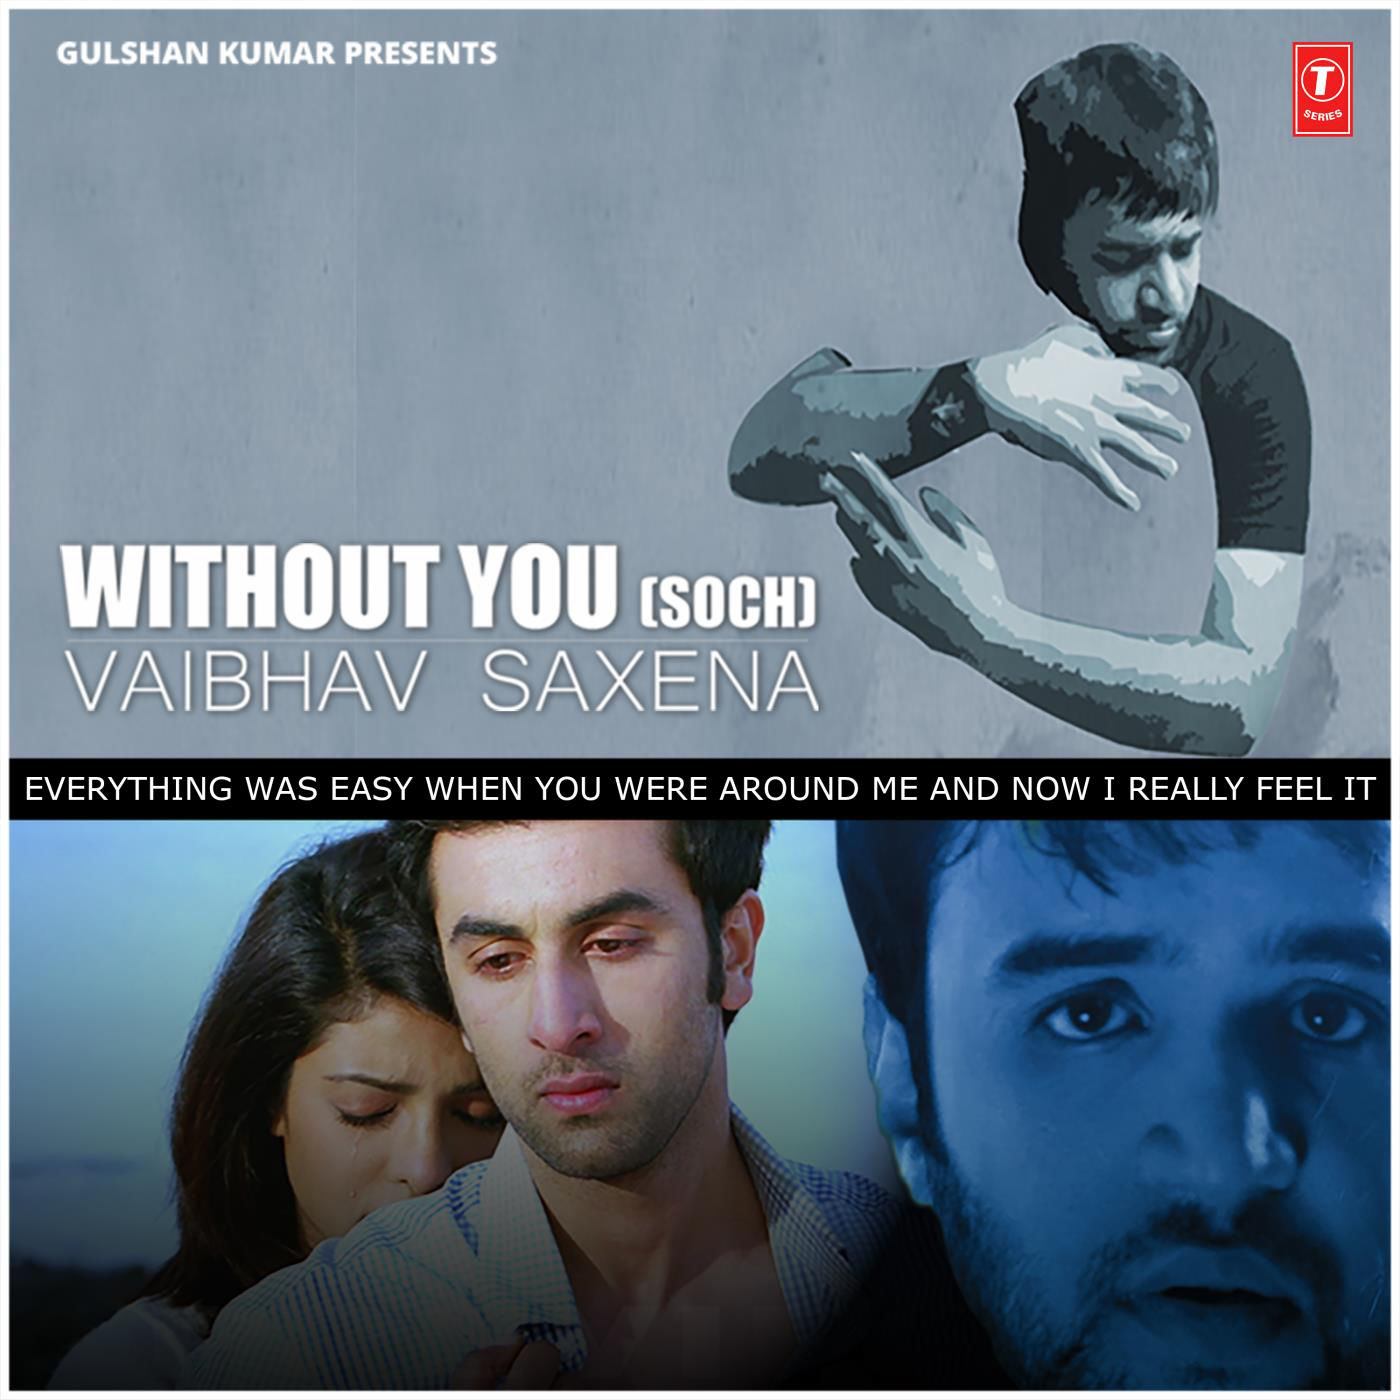 Vaibhav Saxena, Hardy Sandhu & B. Praak - Without You (Soch) (Without You (Soch) - Single)